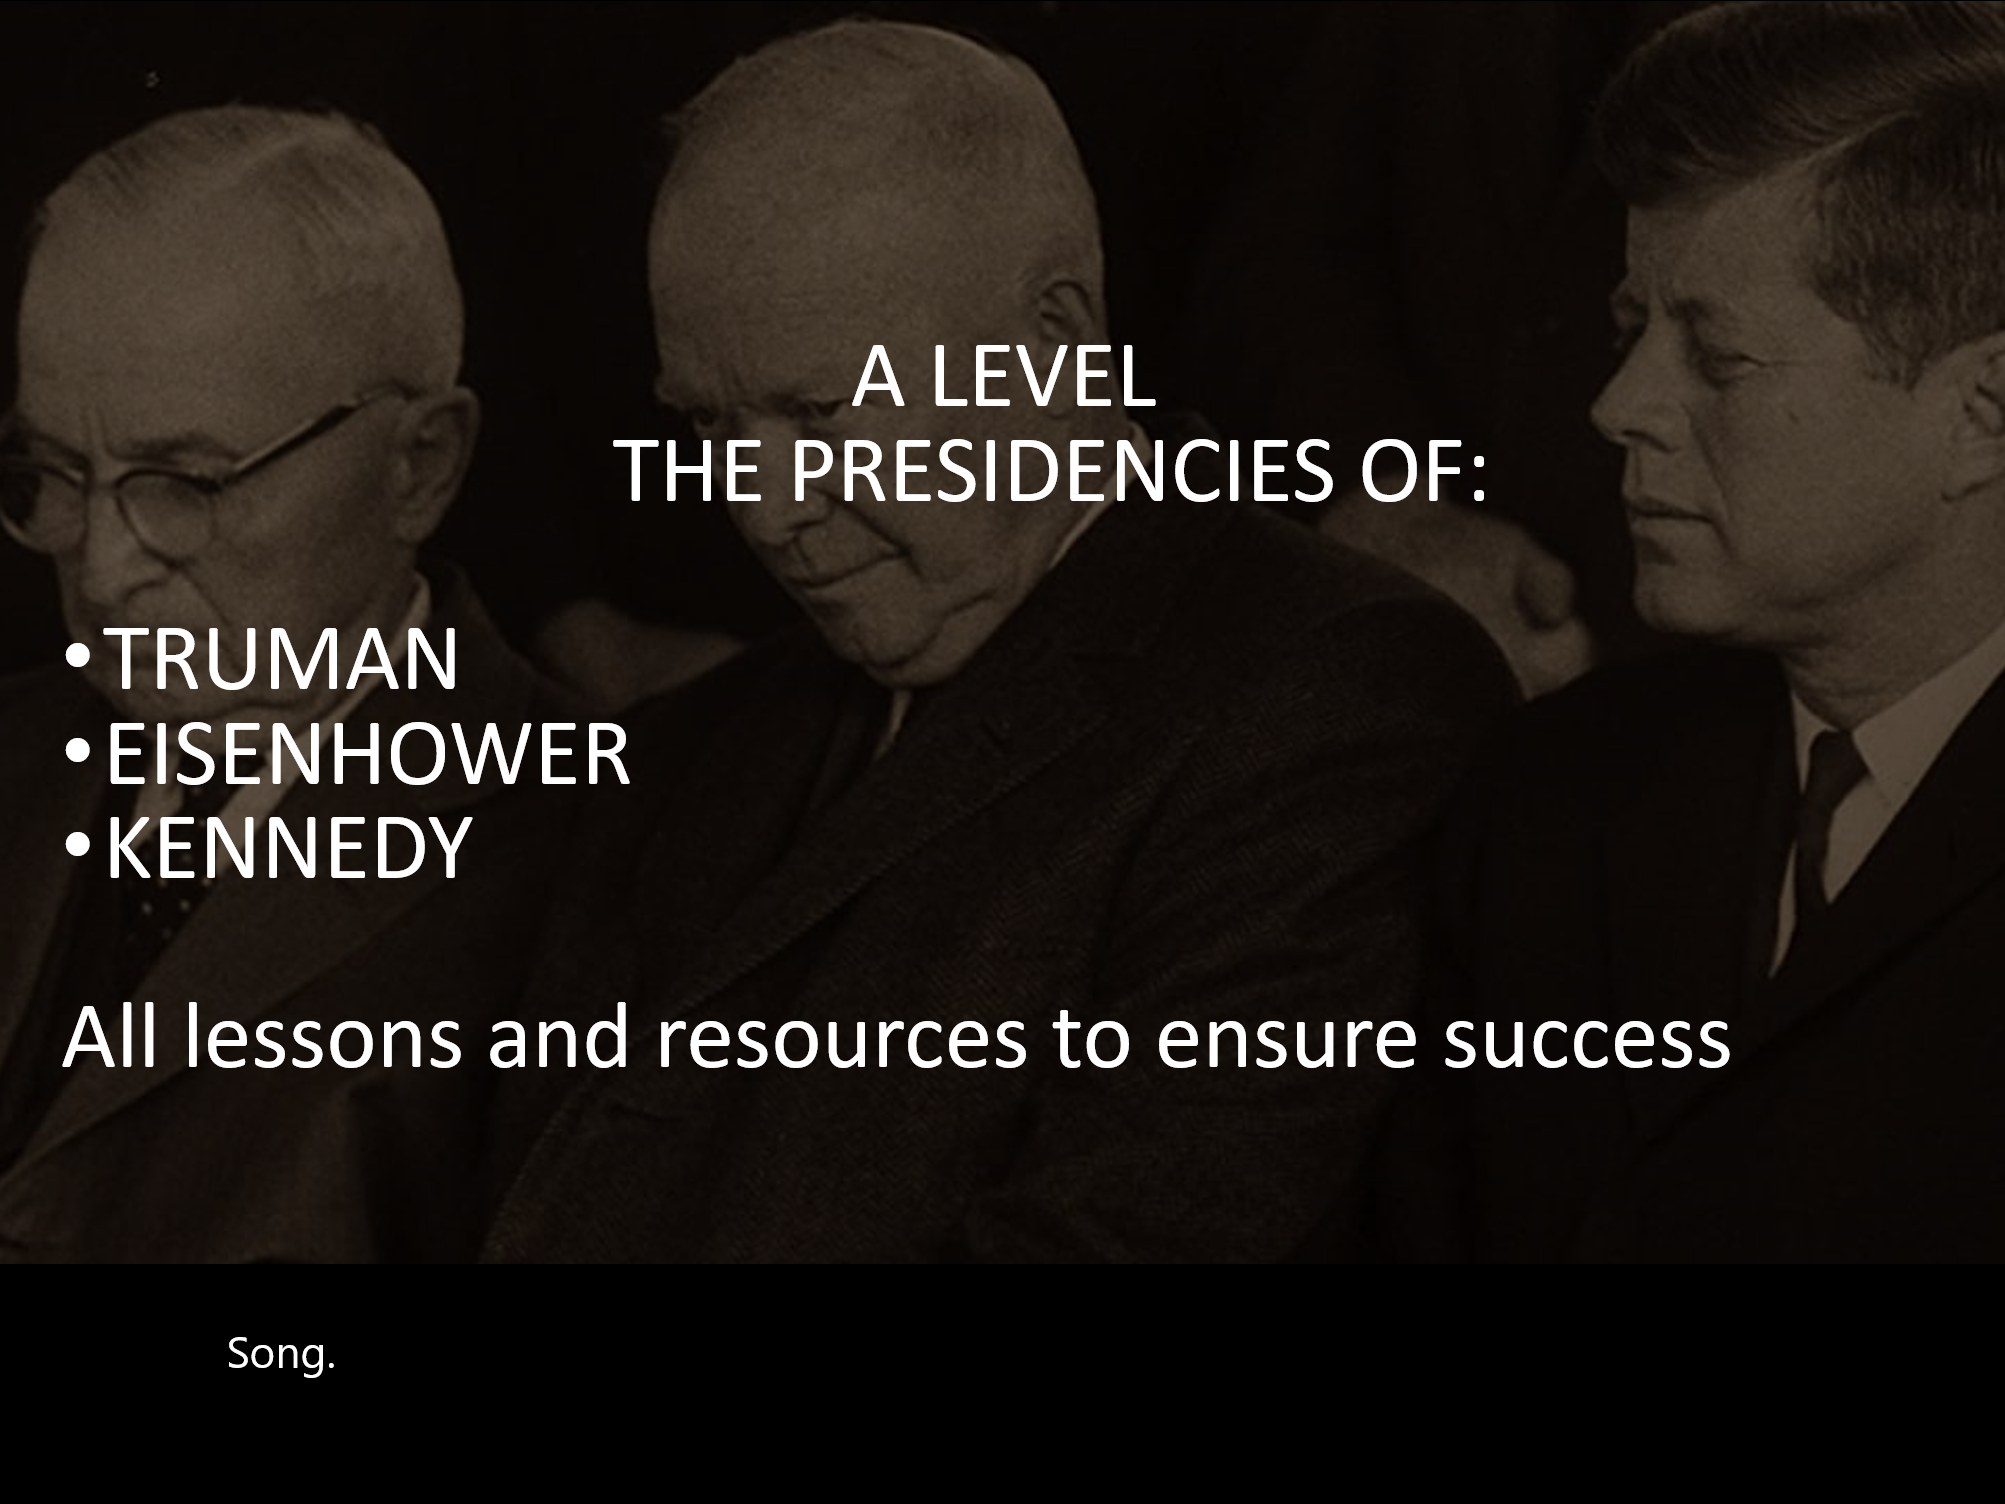 A LEVEL PRESIDENTS TRUMAN; EISENHOWER AND KENNEDY